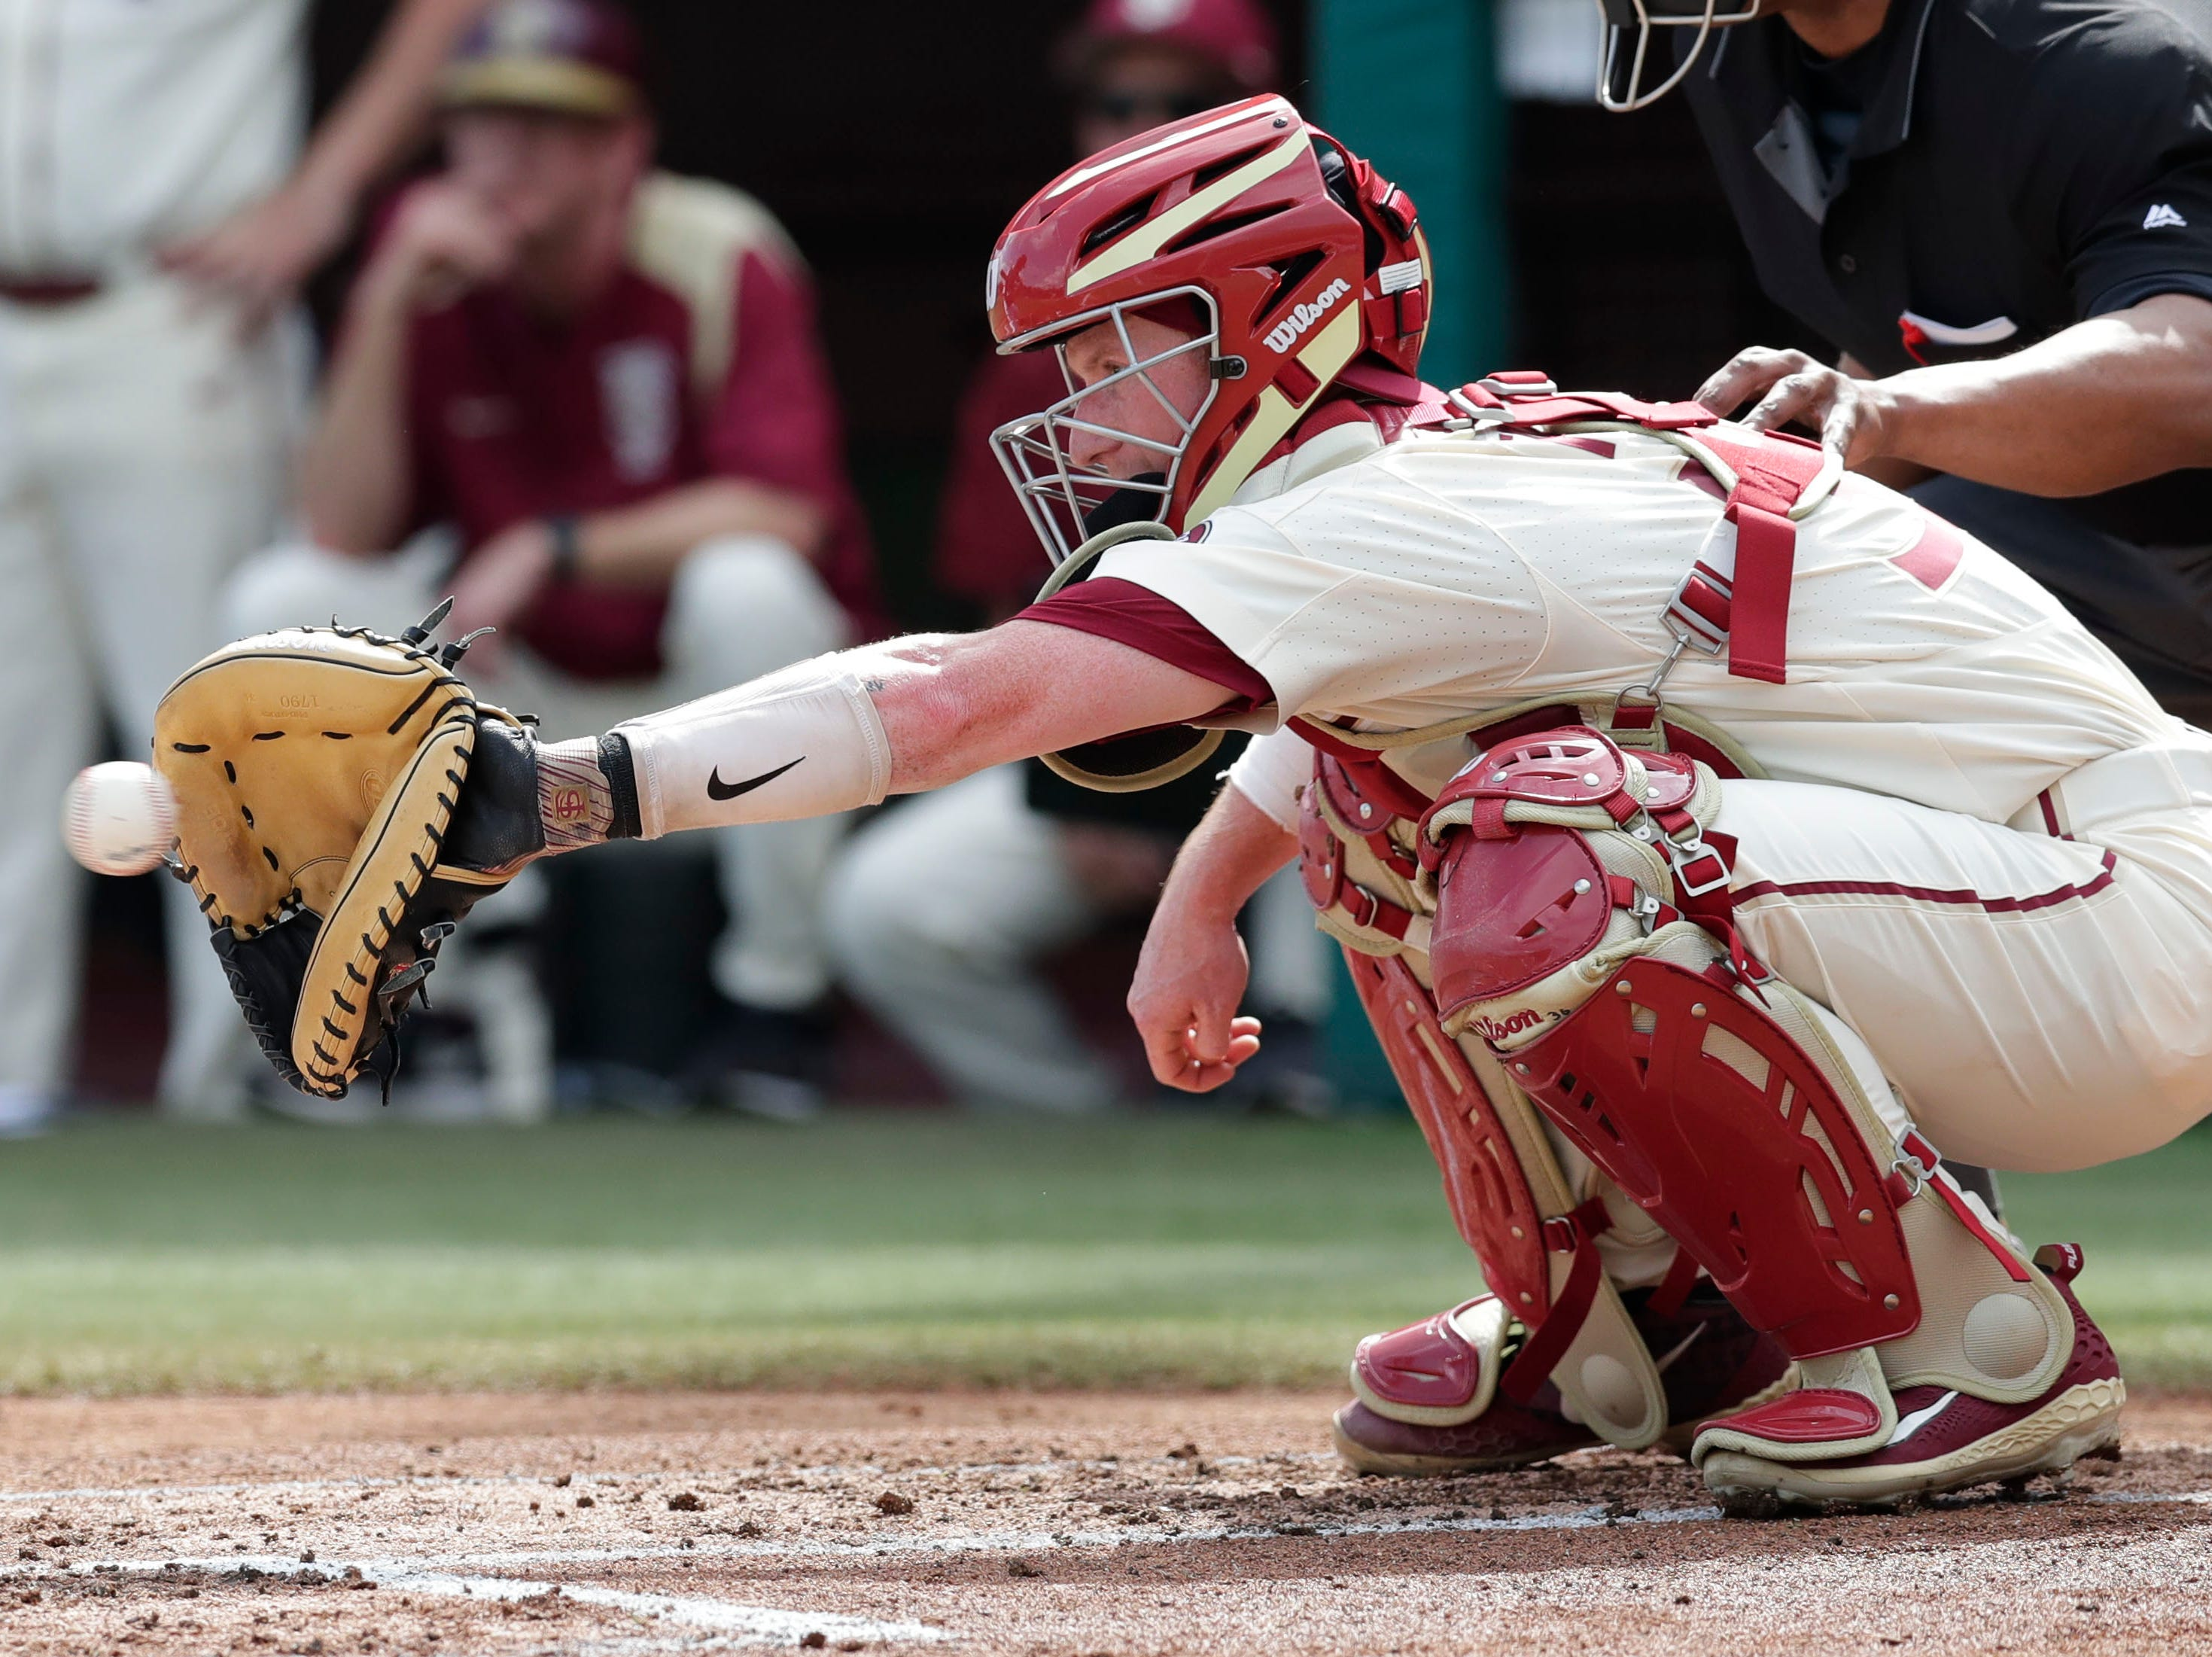 Florida State Seminoles catcher/first baseman Jonathon Foster (36) catches the pitch as the Florida State Seminoles host the Maine Black Bears for the second game of the series, Saturday Feb. 16, 2019.